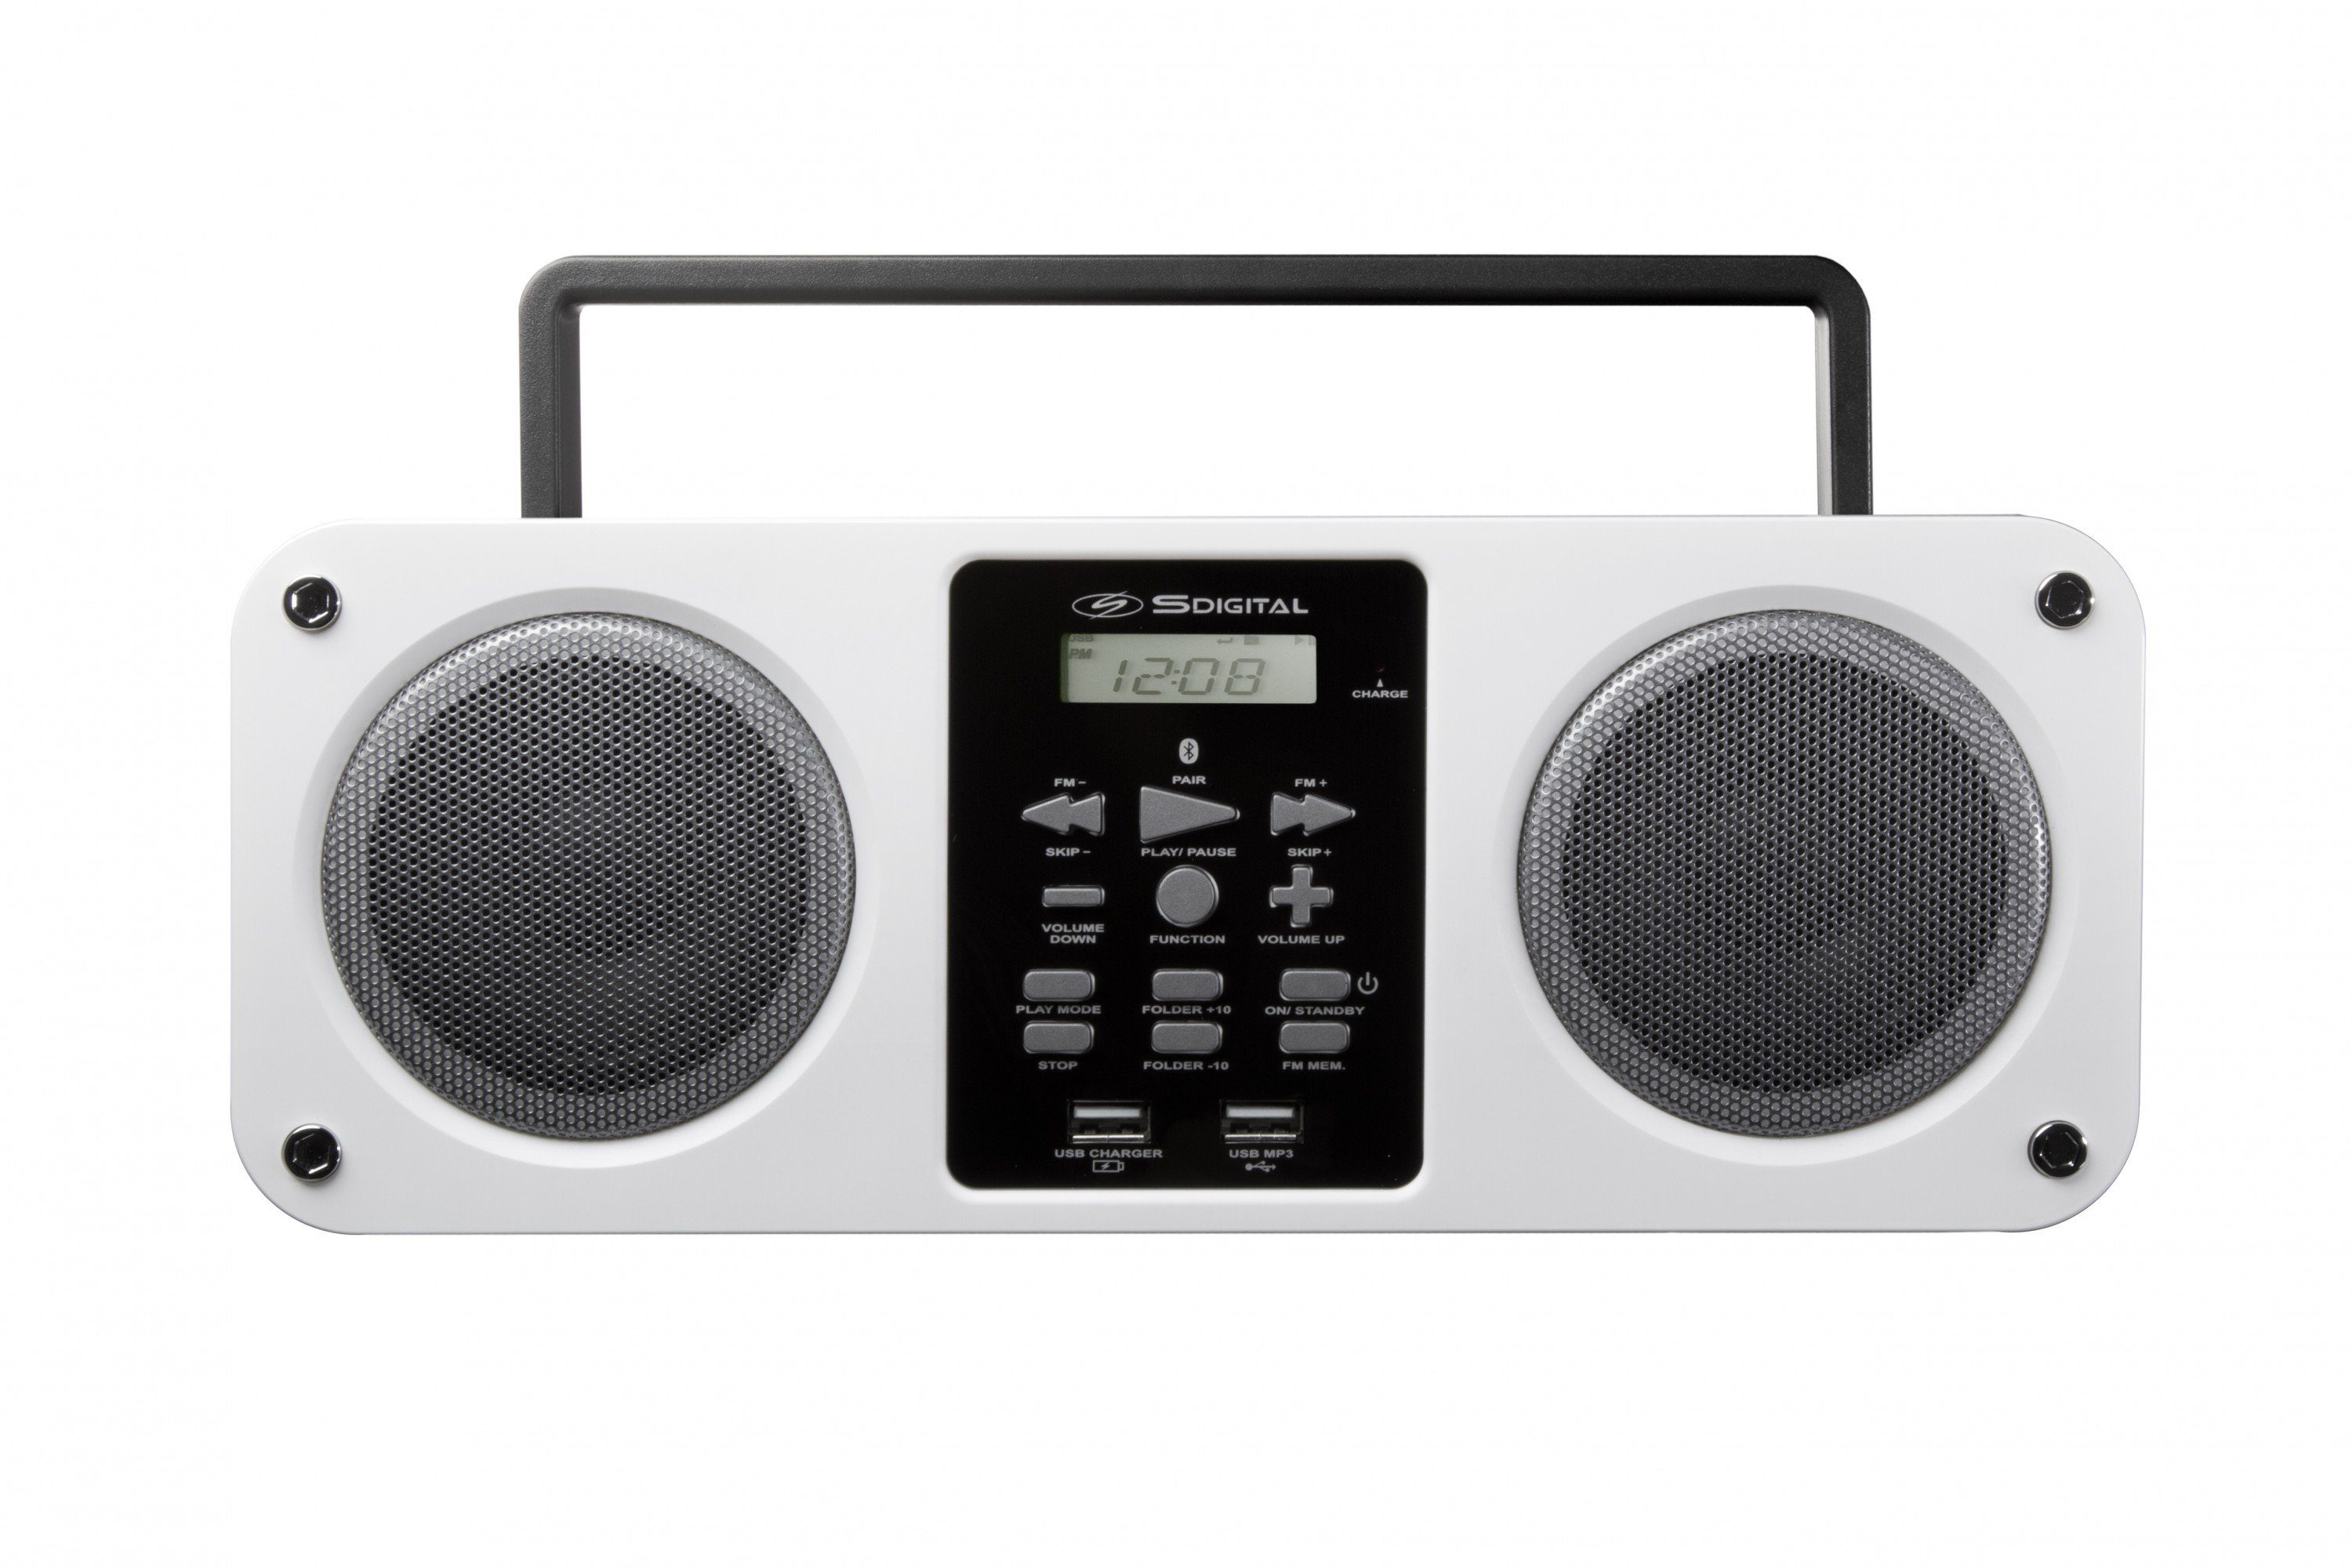 SDigital tragbare Bluetooth-Boombox (FM-Radio, MP3-Wiedergabe) »Mission«